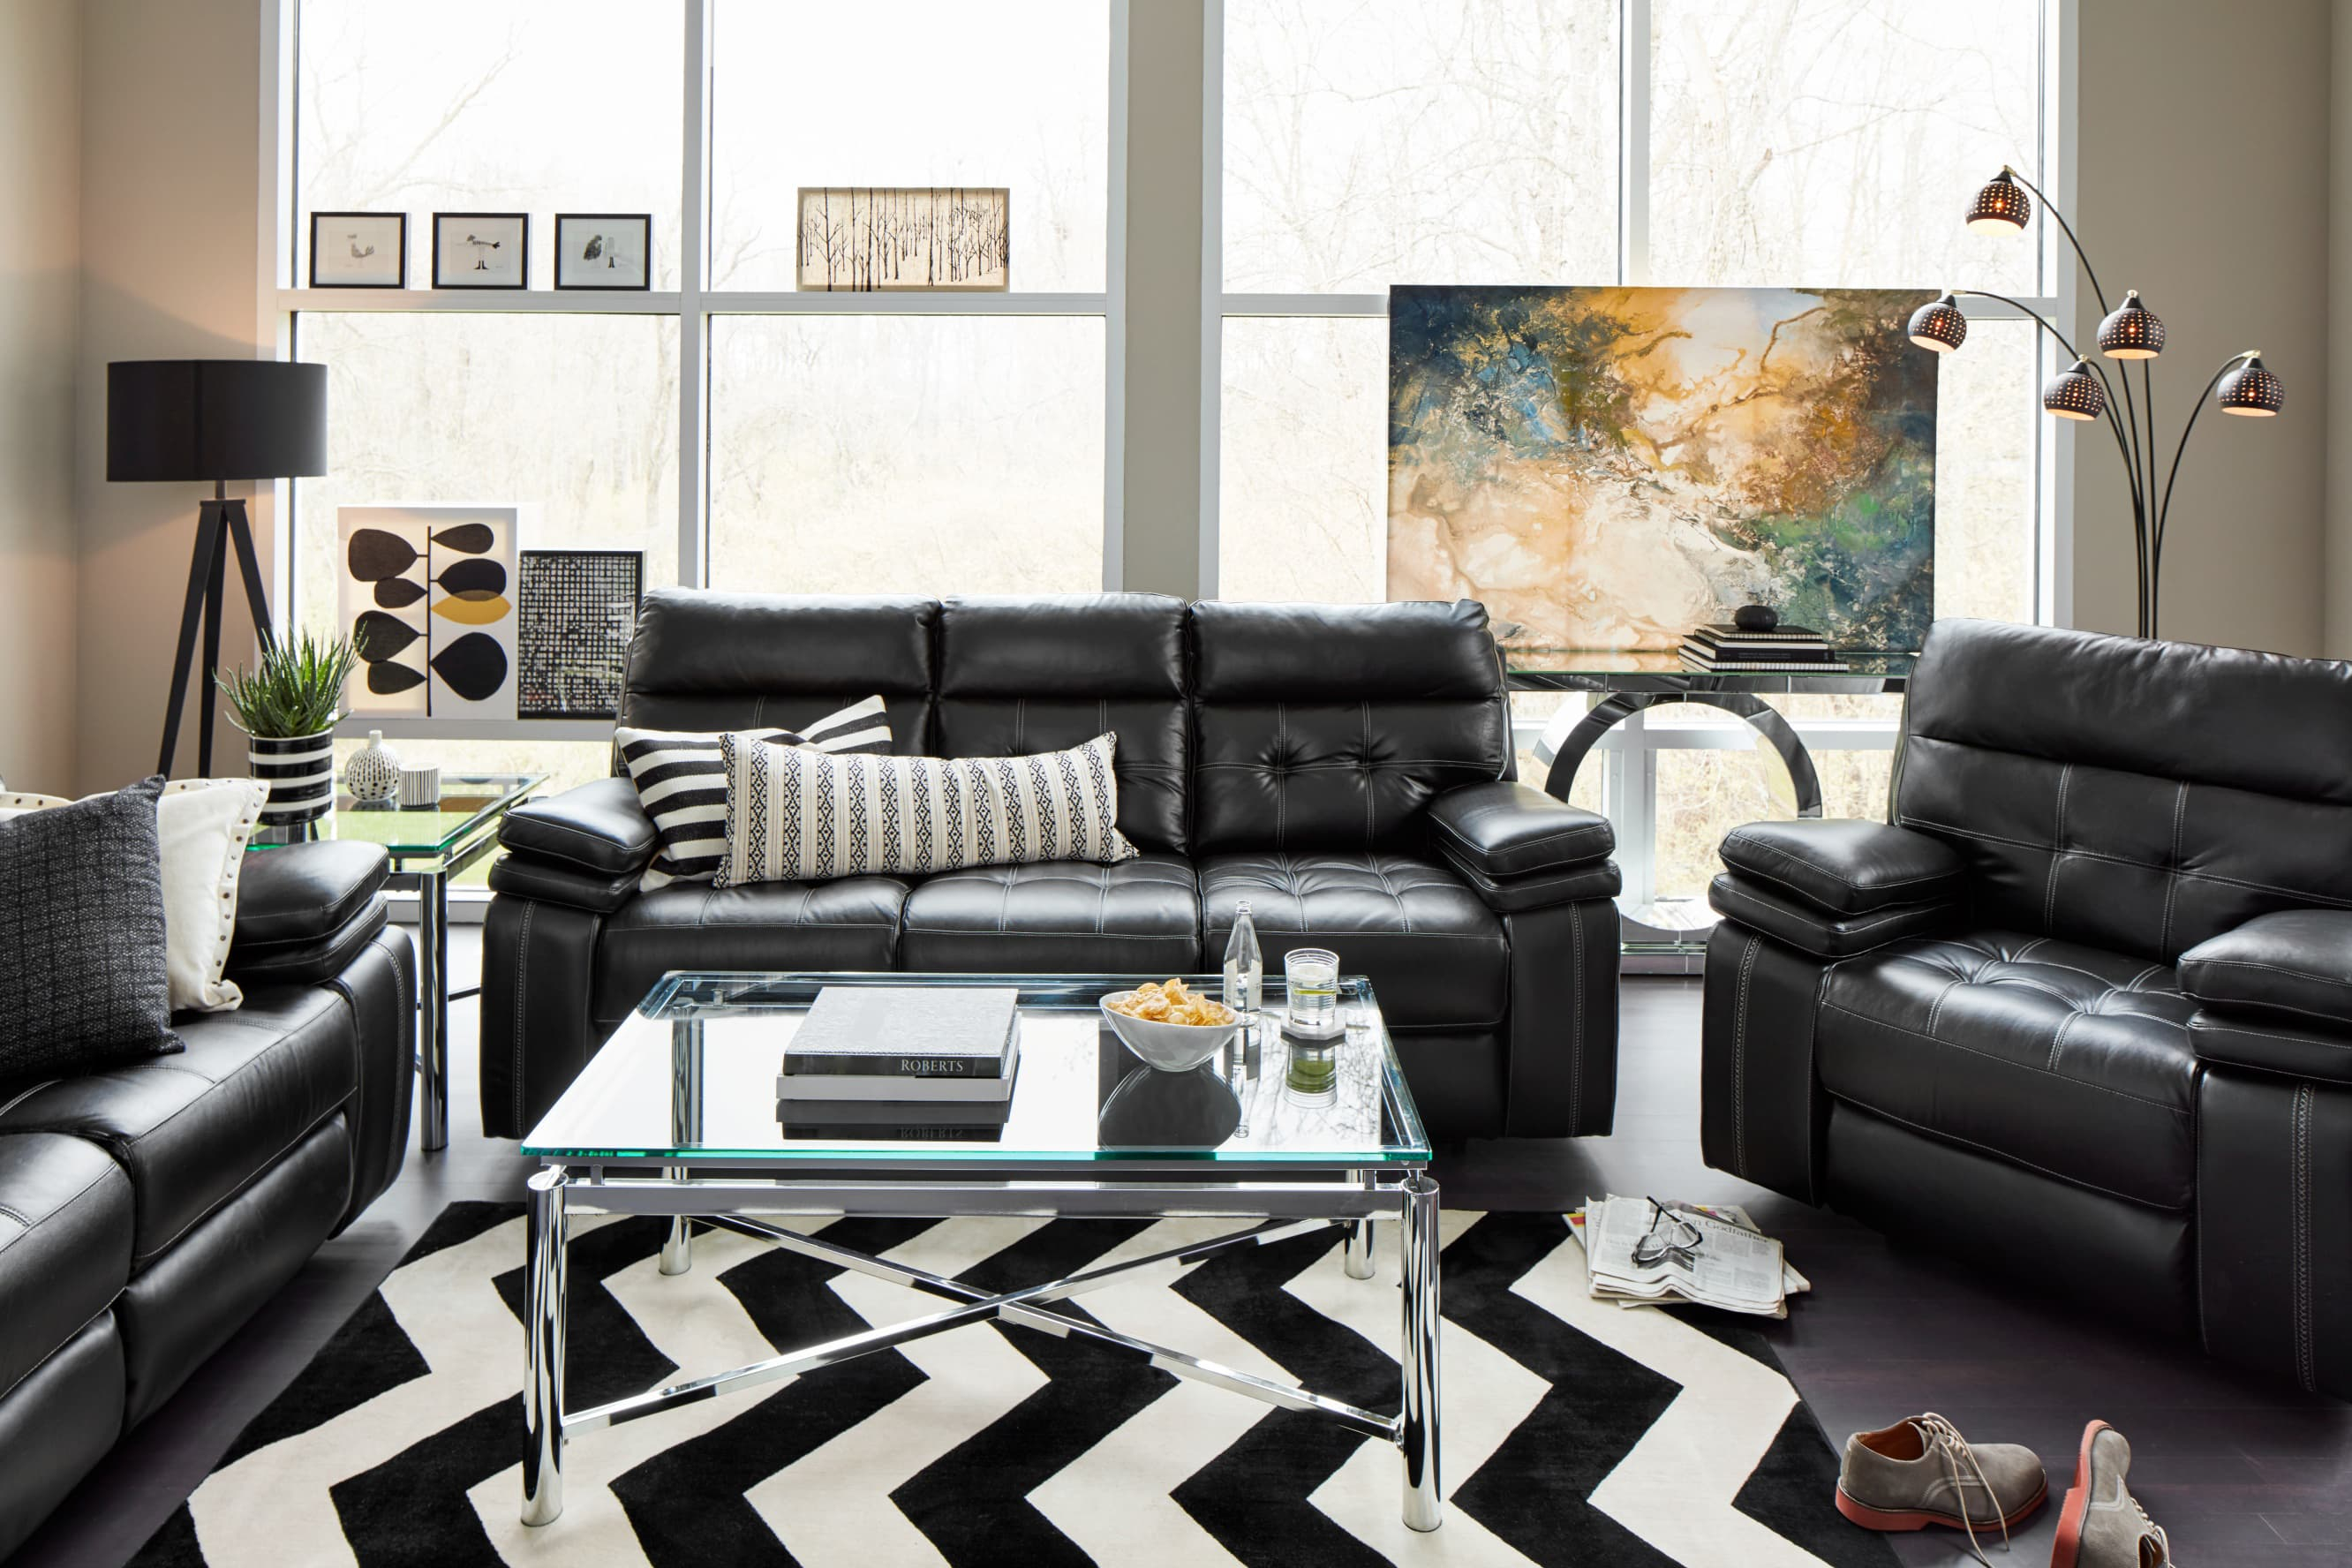 What To Think About When Setting Up Your Living Room Apartment Therapy for 15 Genius Designs of How to Improve Setting Up Living Room